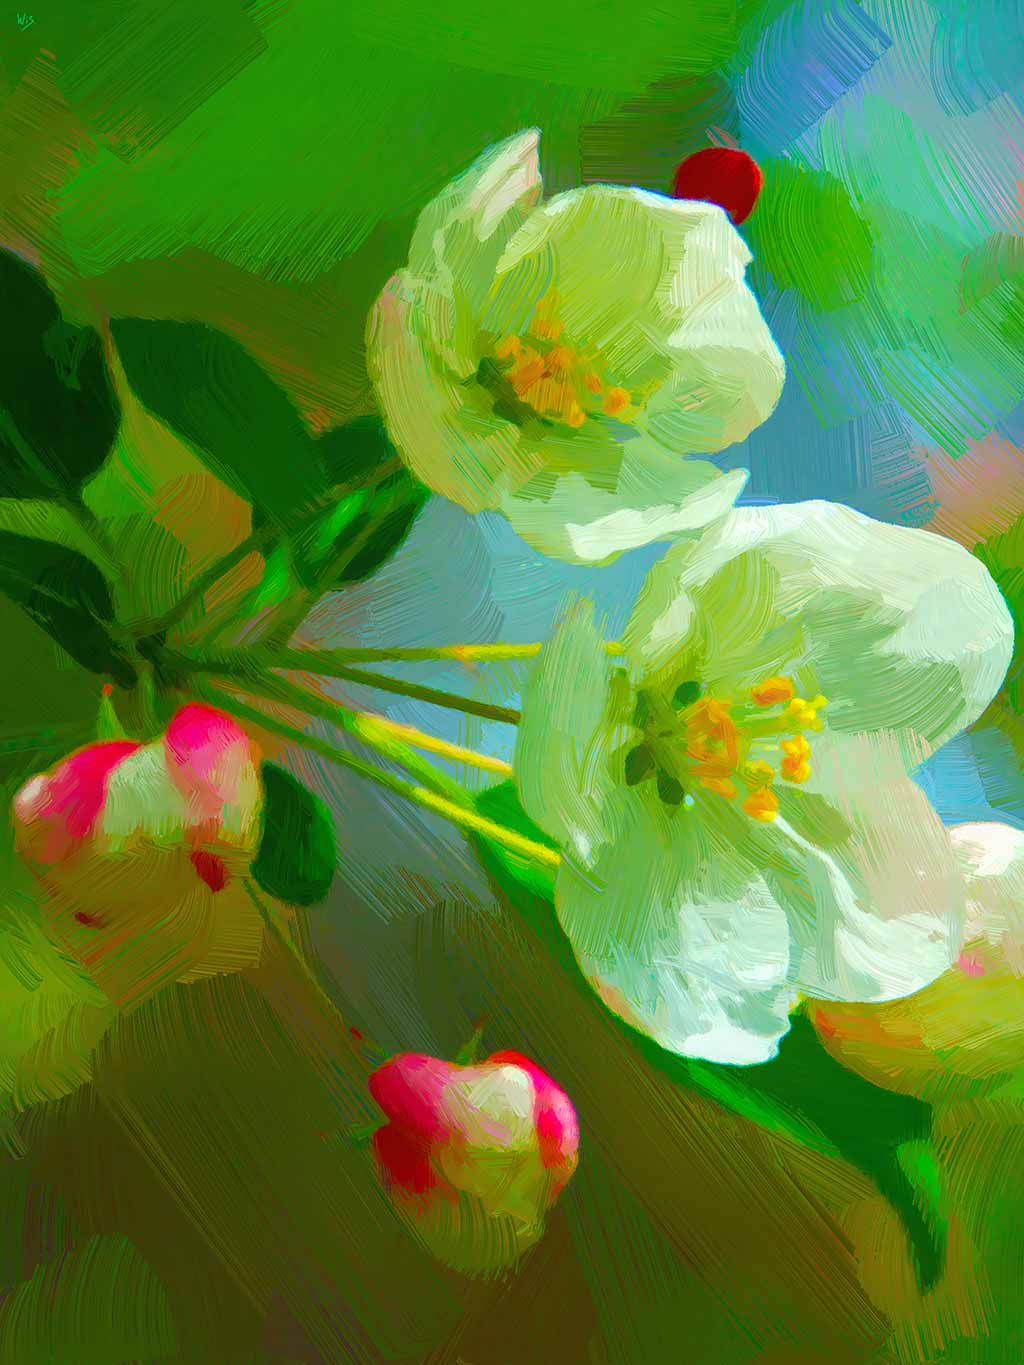 Apple Flowering in a digital painting on Art Canvas Print by Wieslaw Sadurski